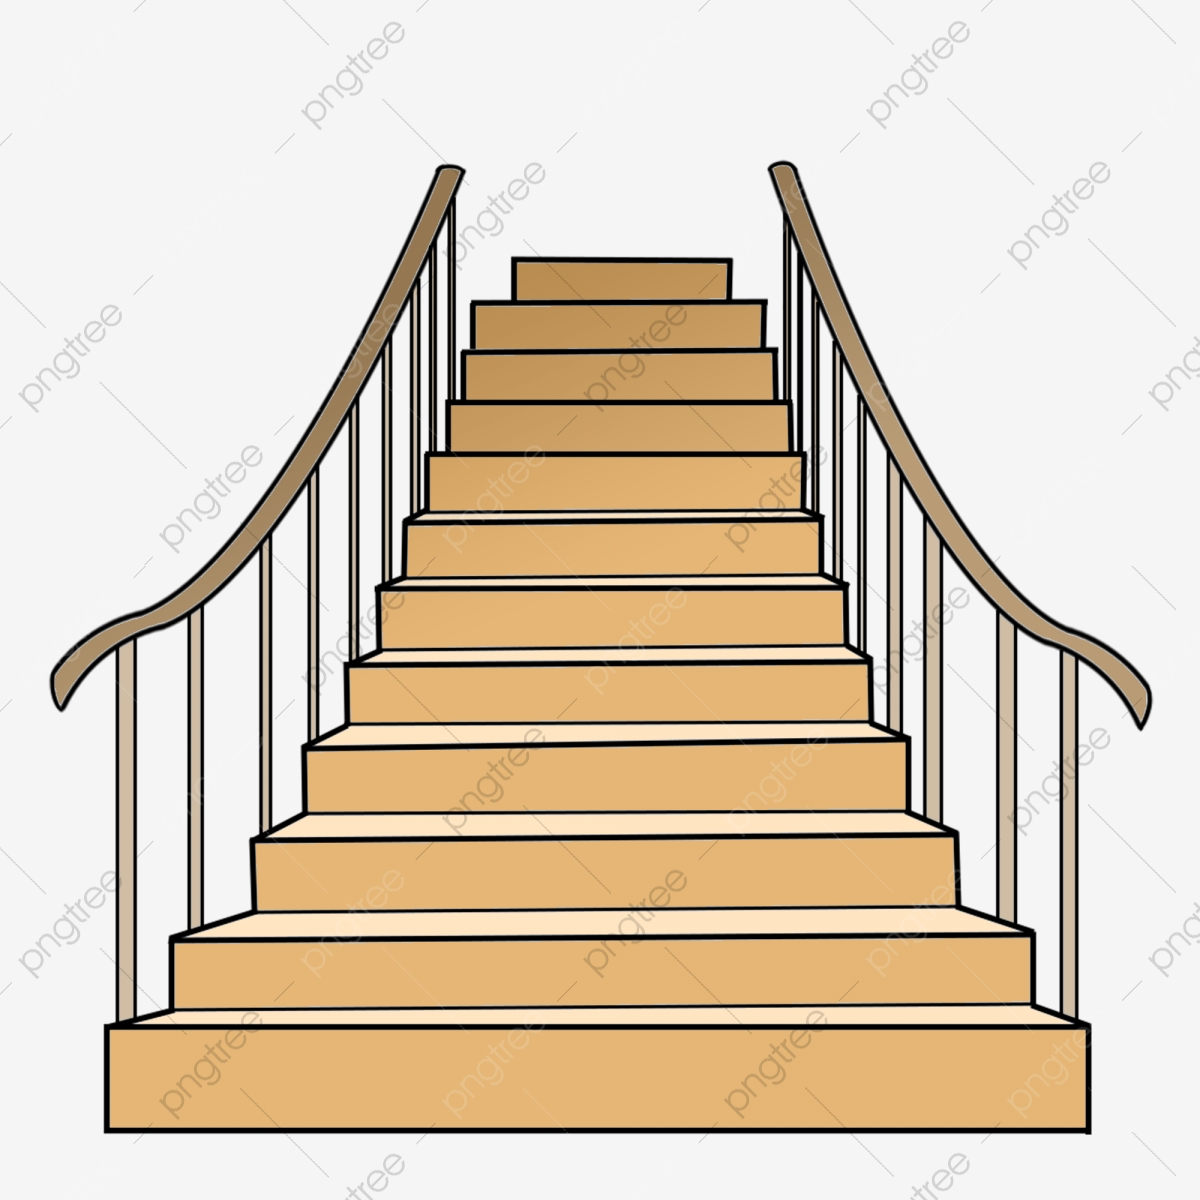 Old Stairs: Wooden Cartoon Stairs Illustration, Wooden Stairs, Yellow